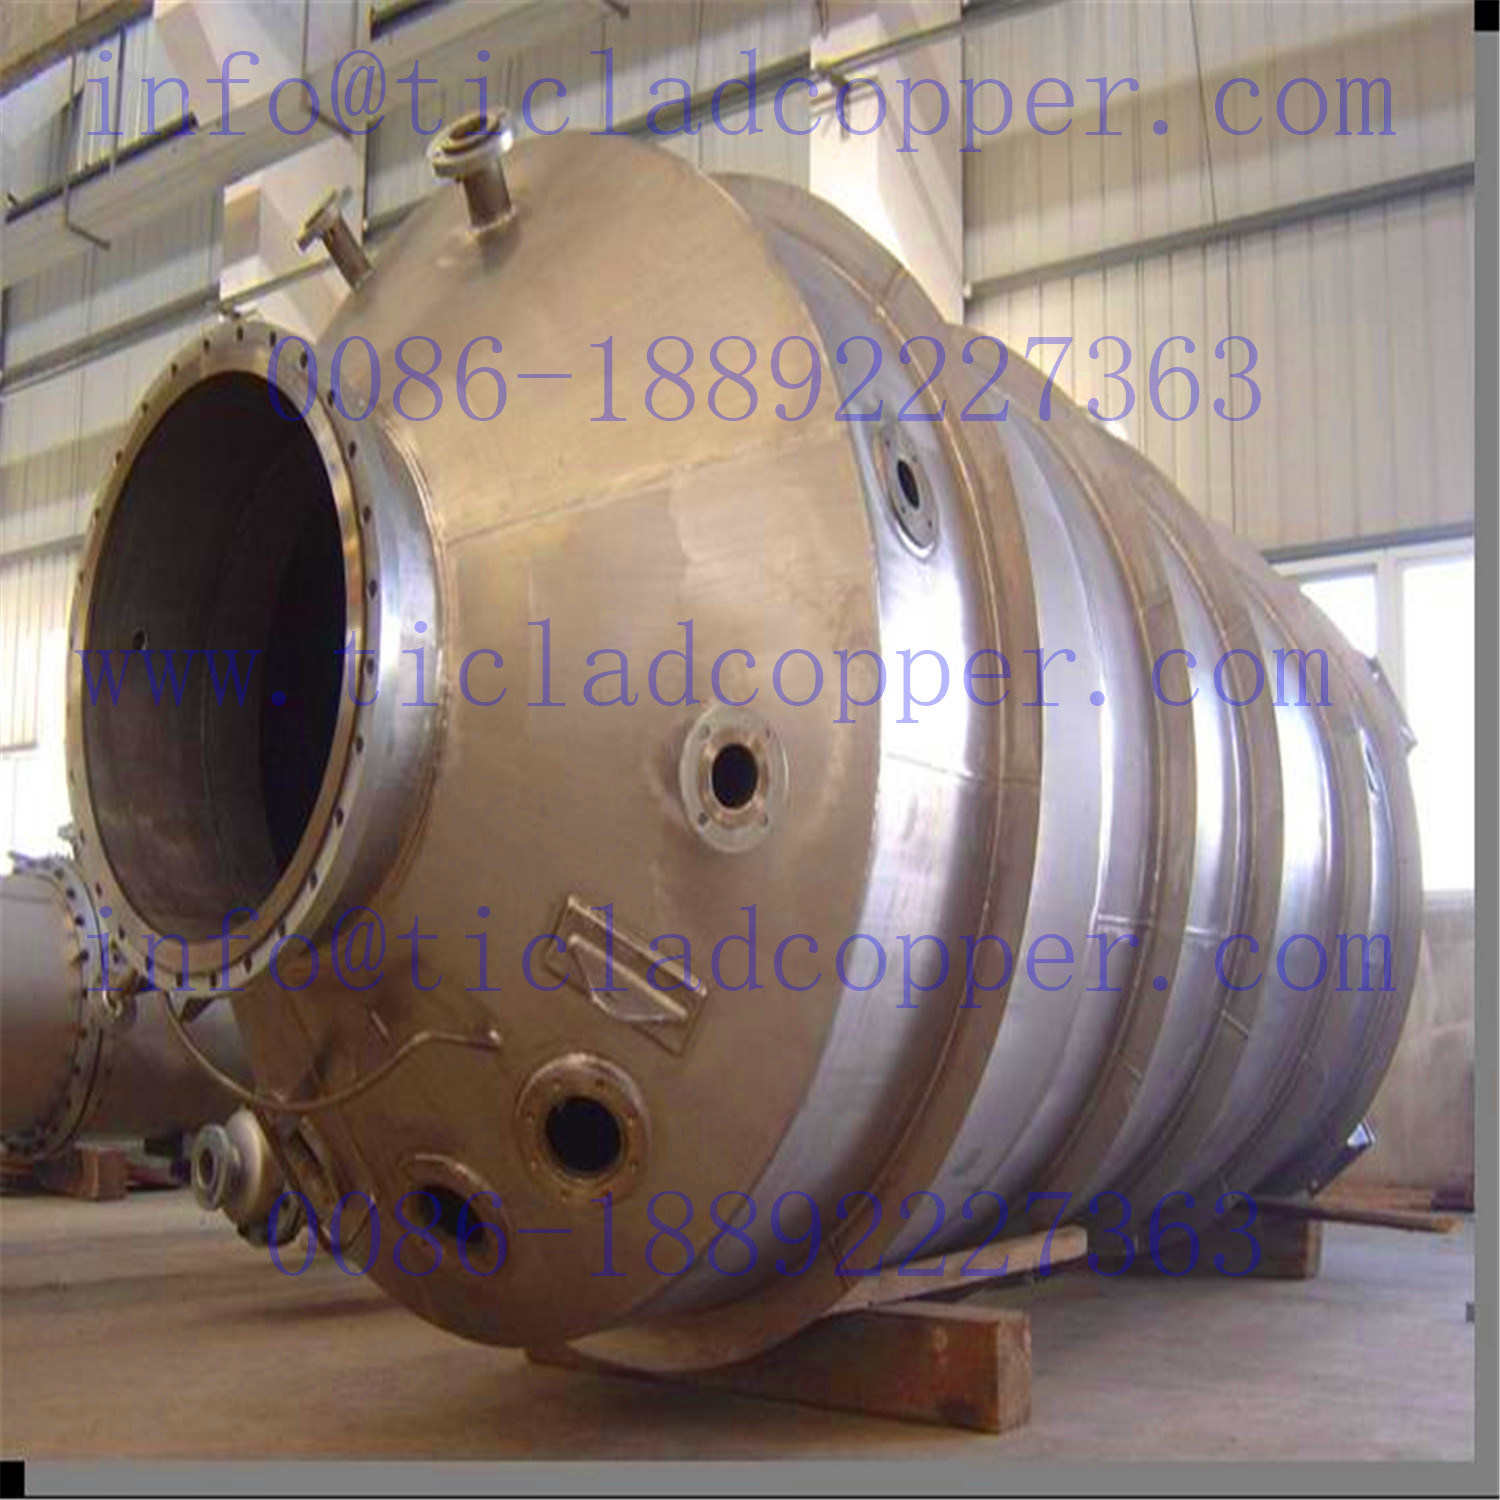 Titanium Pressure Vessle/ Reaction Tanks / Kettle